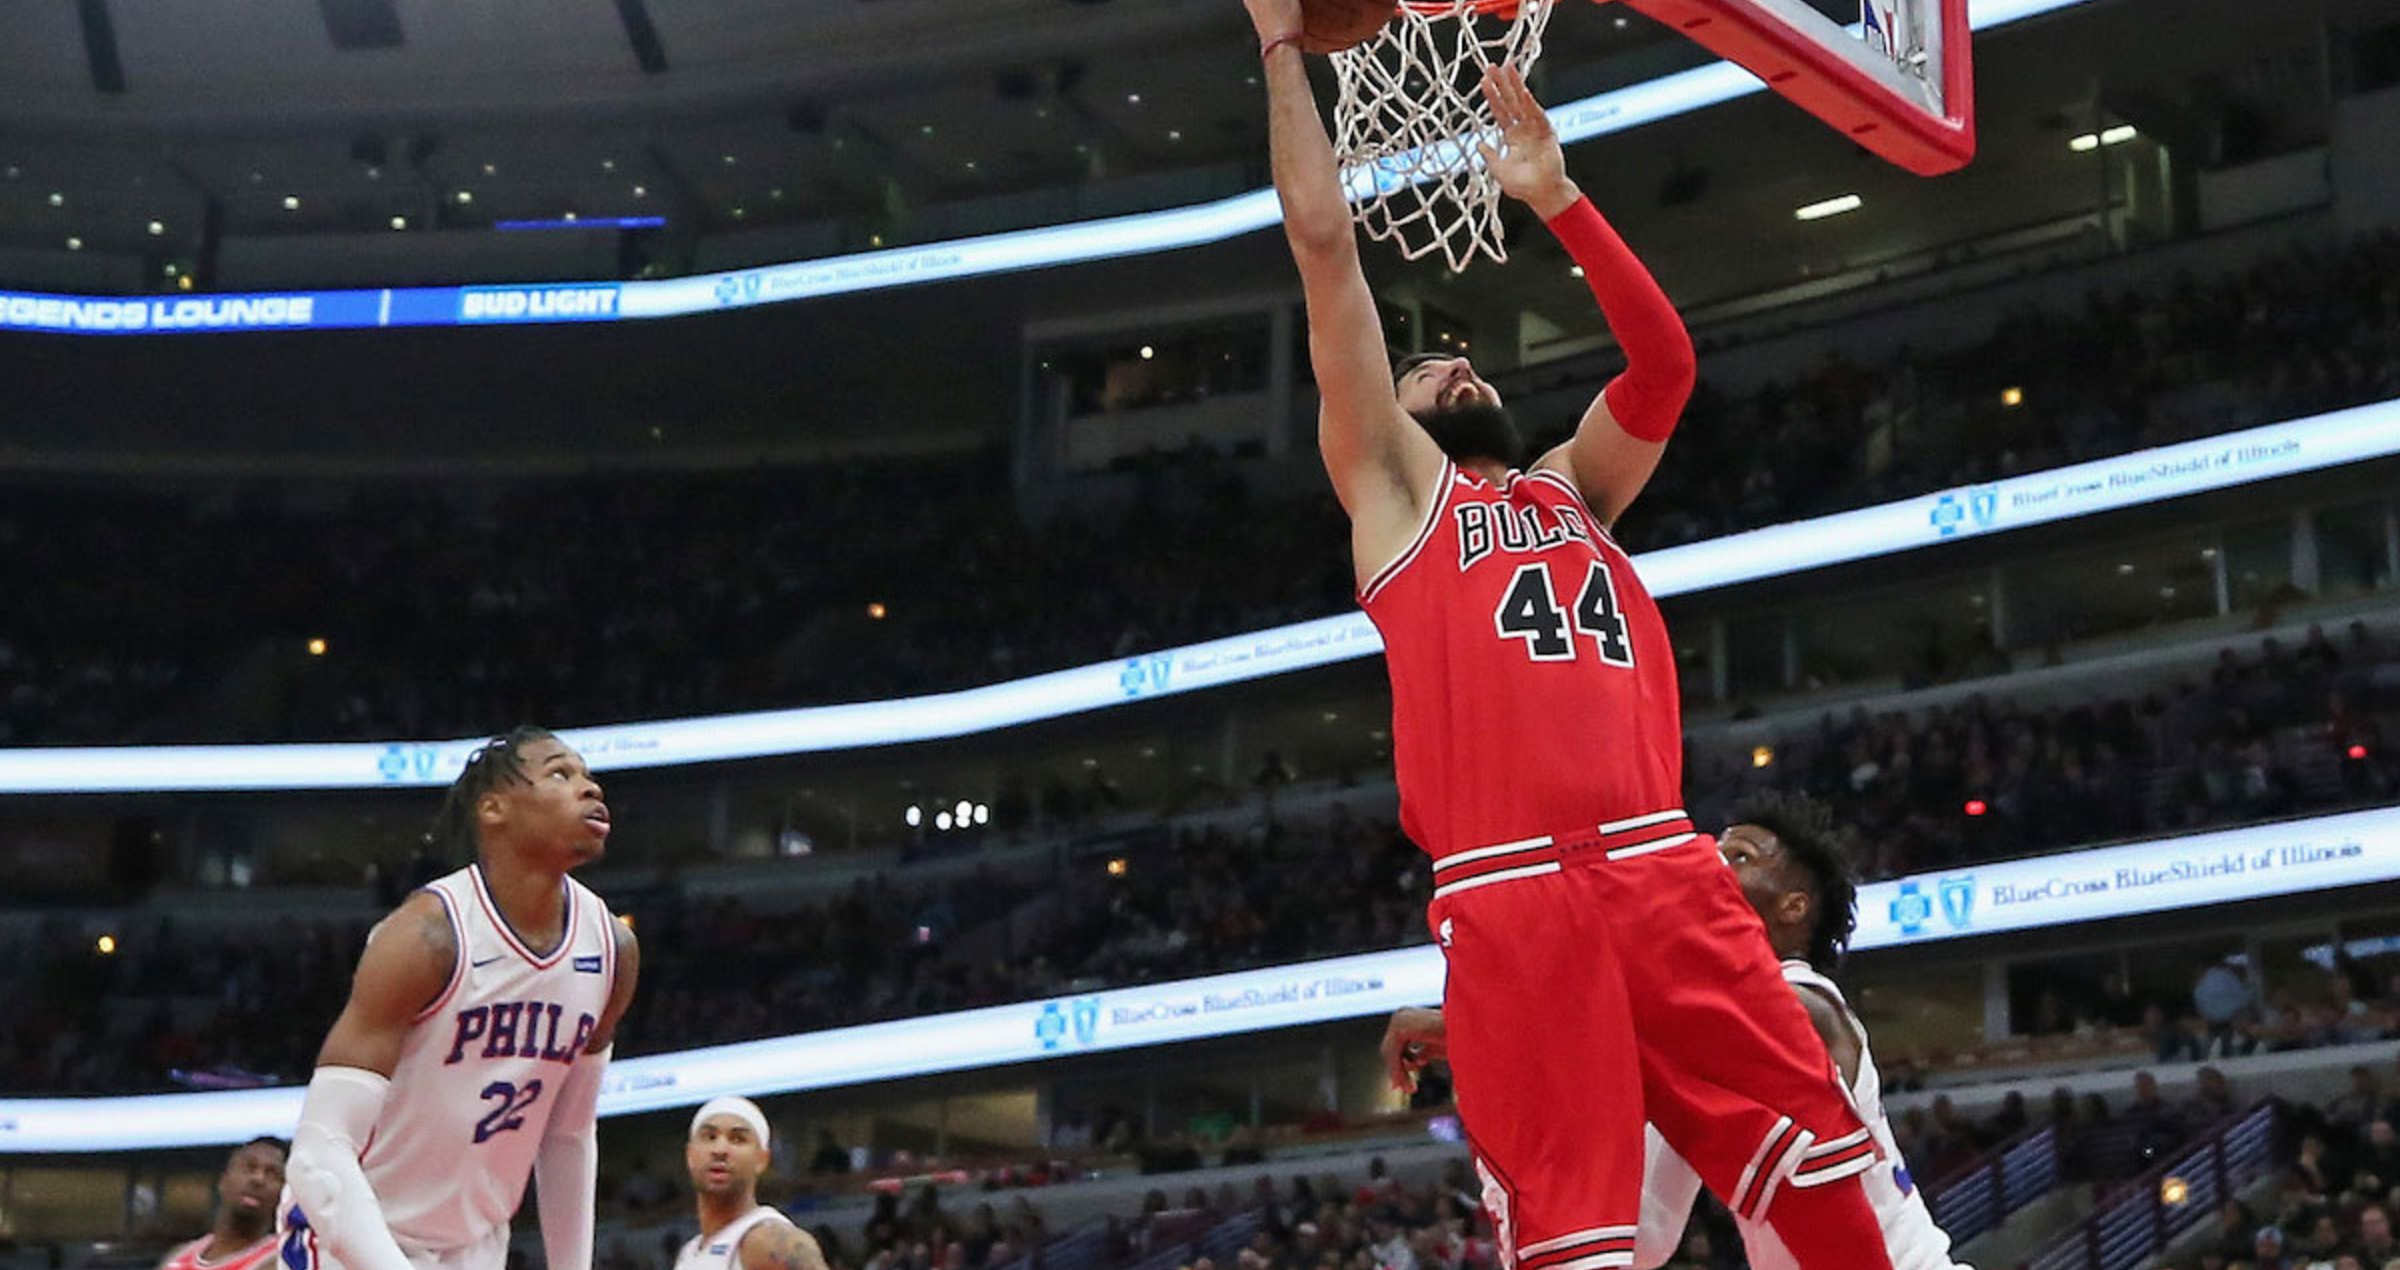 Nikola Mirotic #44 of the Chicago Bulls moves to the Basket against the Philadelphia 76ers